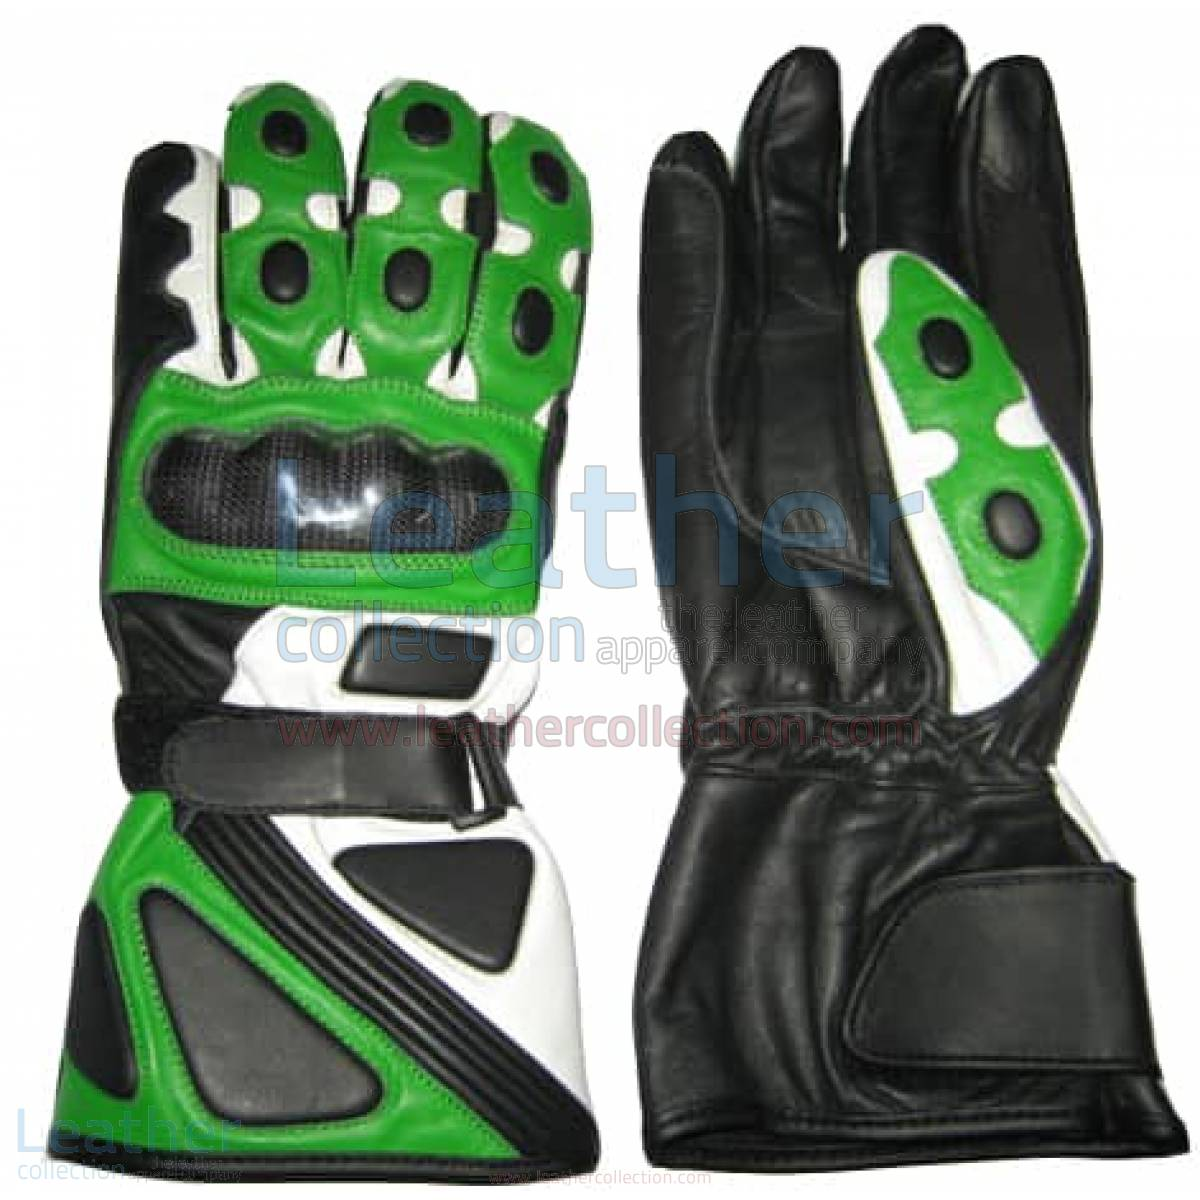 Bravo Green Motorcycle Race Gloves –  Gloves